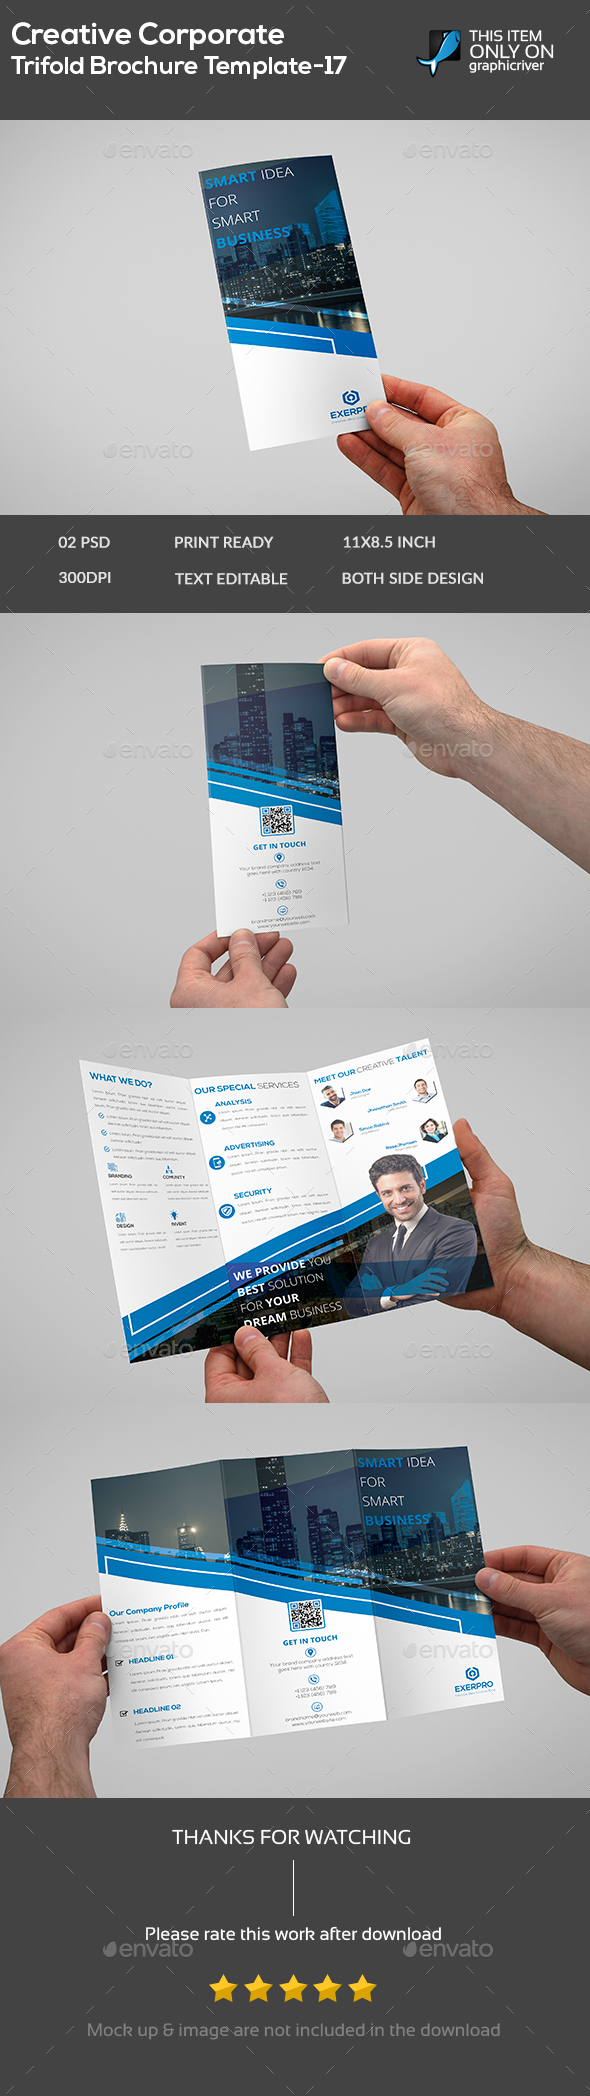 Creative Corporate Trifold Brochure Template -17 - Brochures Print Templates